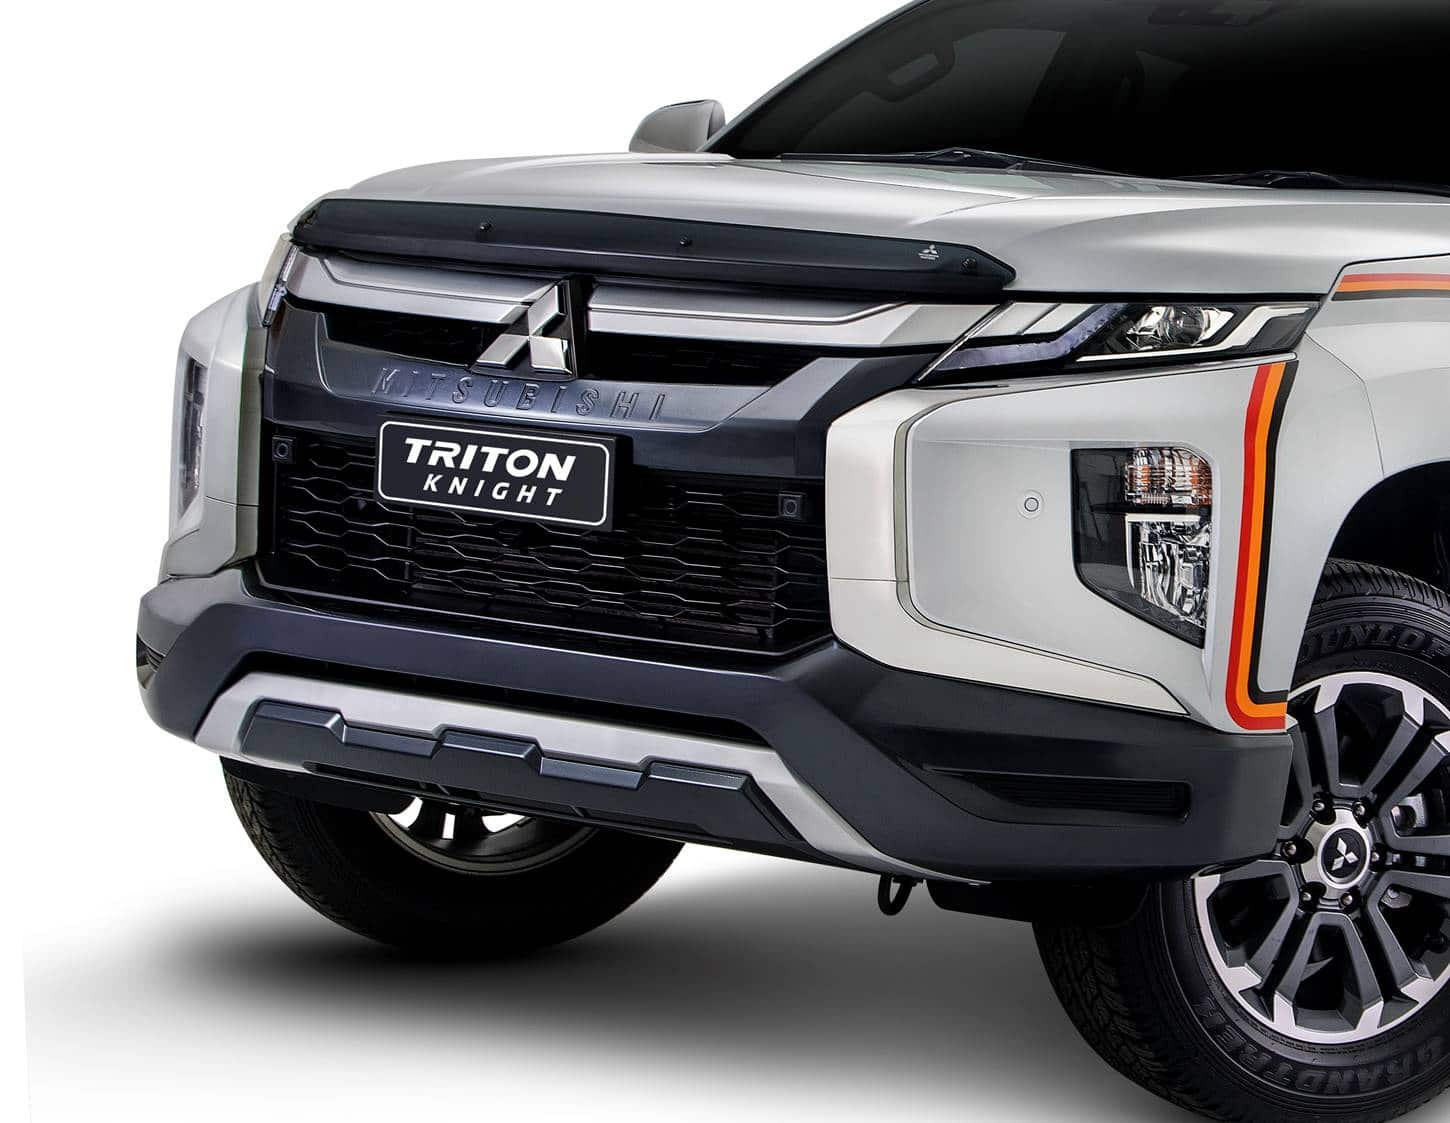 Knight Front Grill